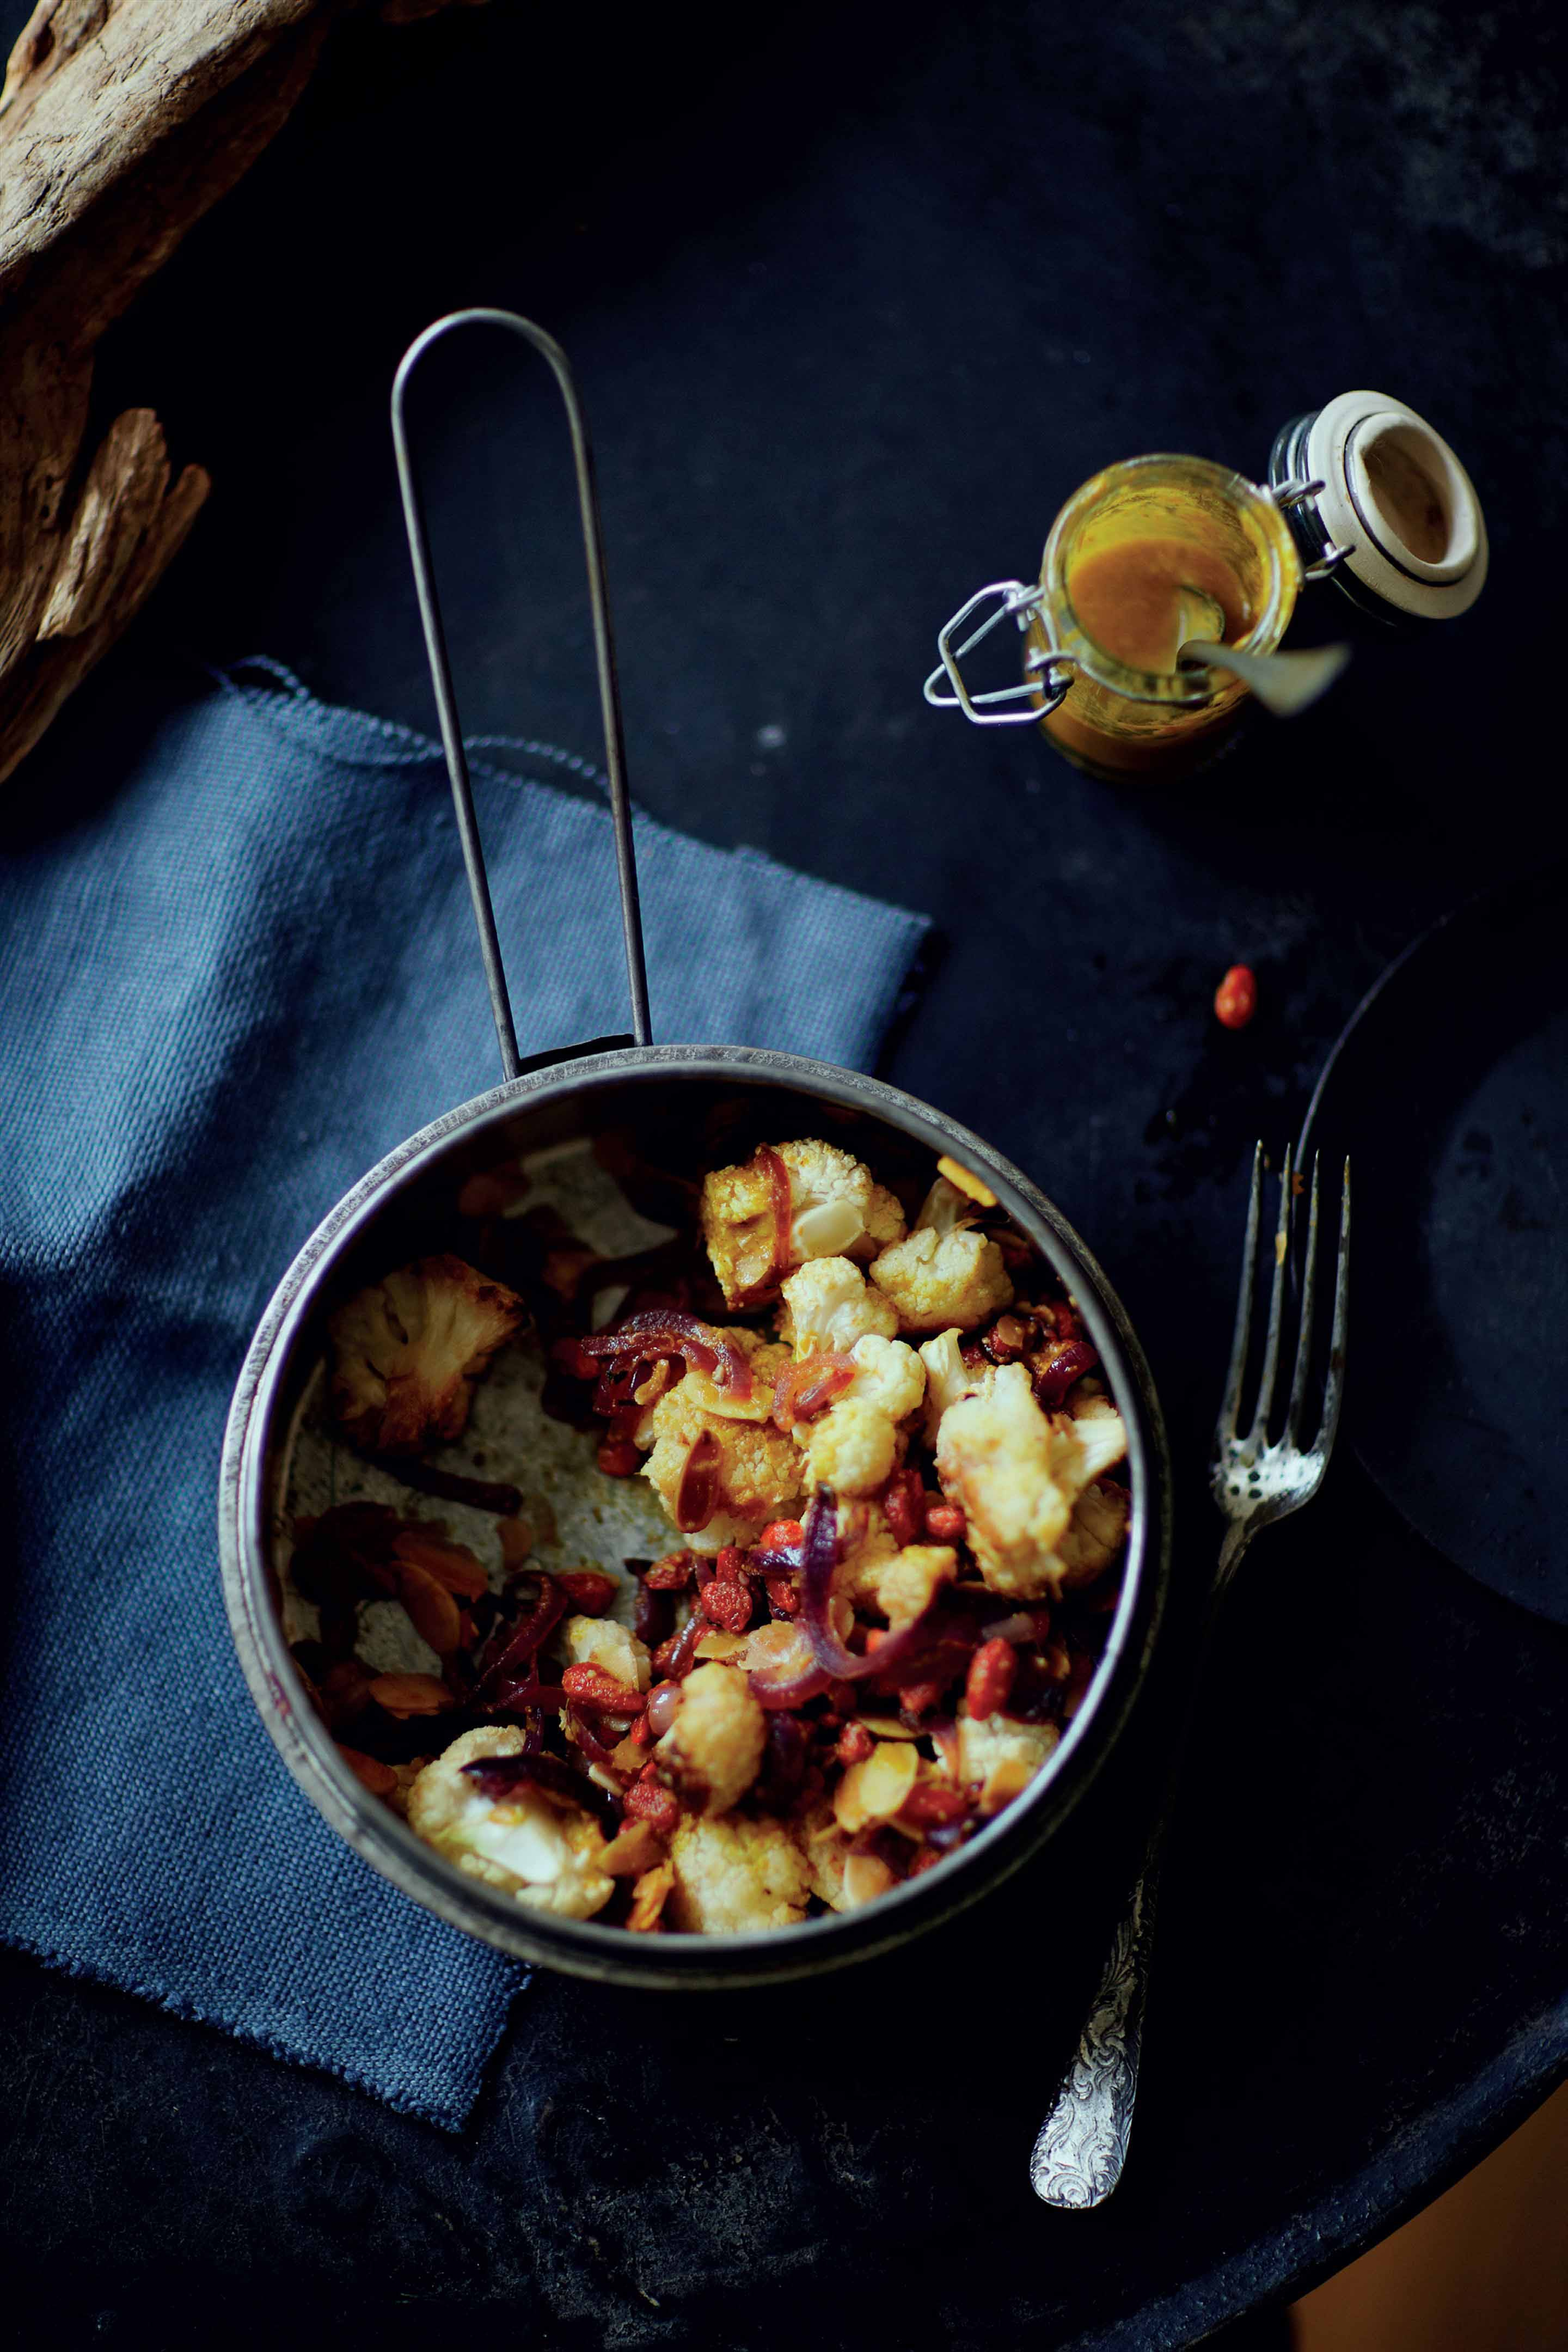 Cauliflower, goji berry and almond salad with turmeric dressing